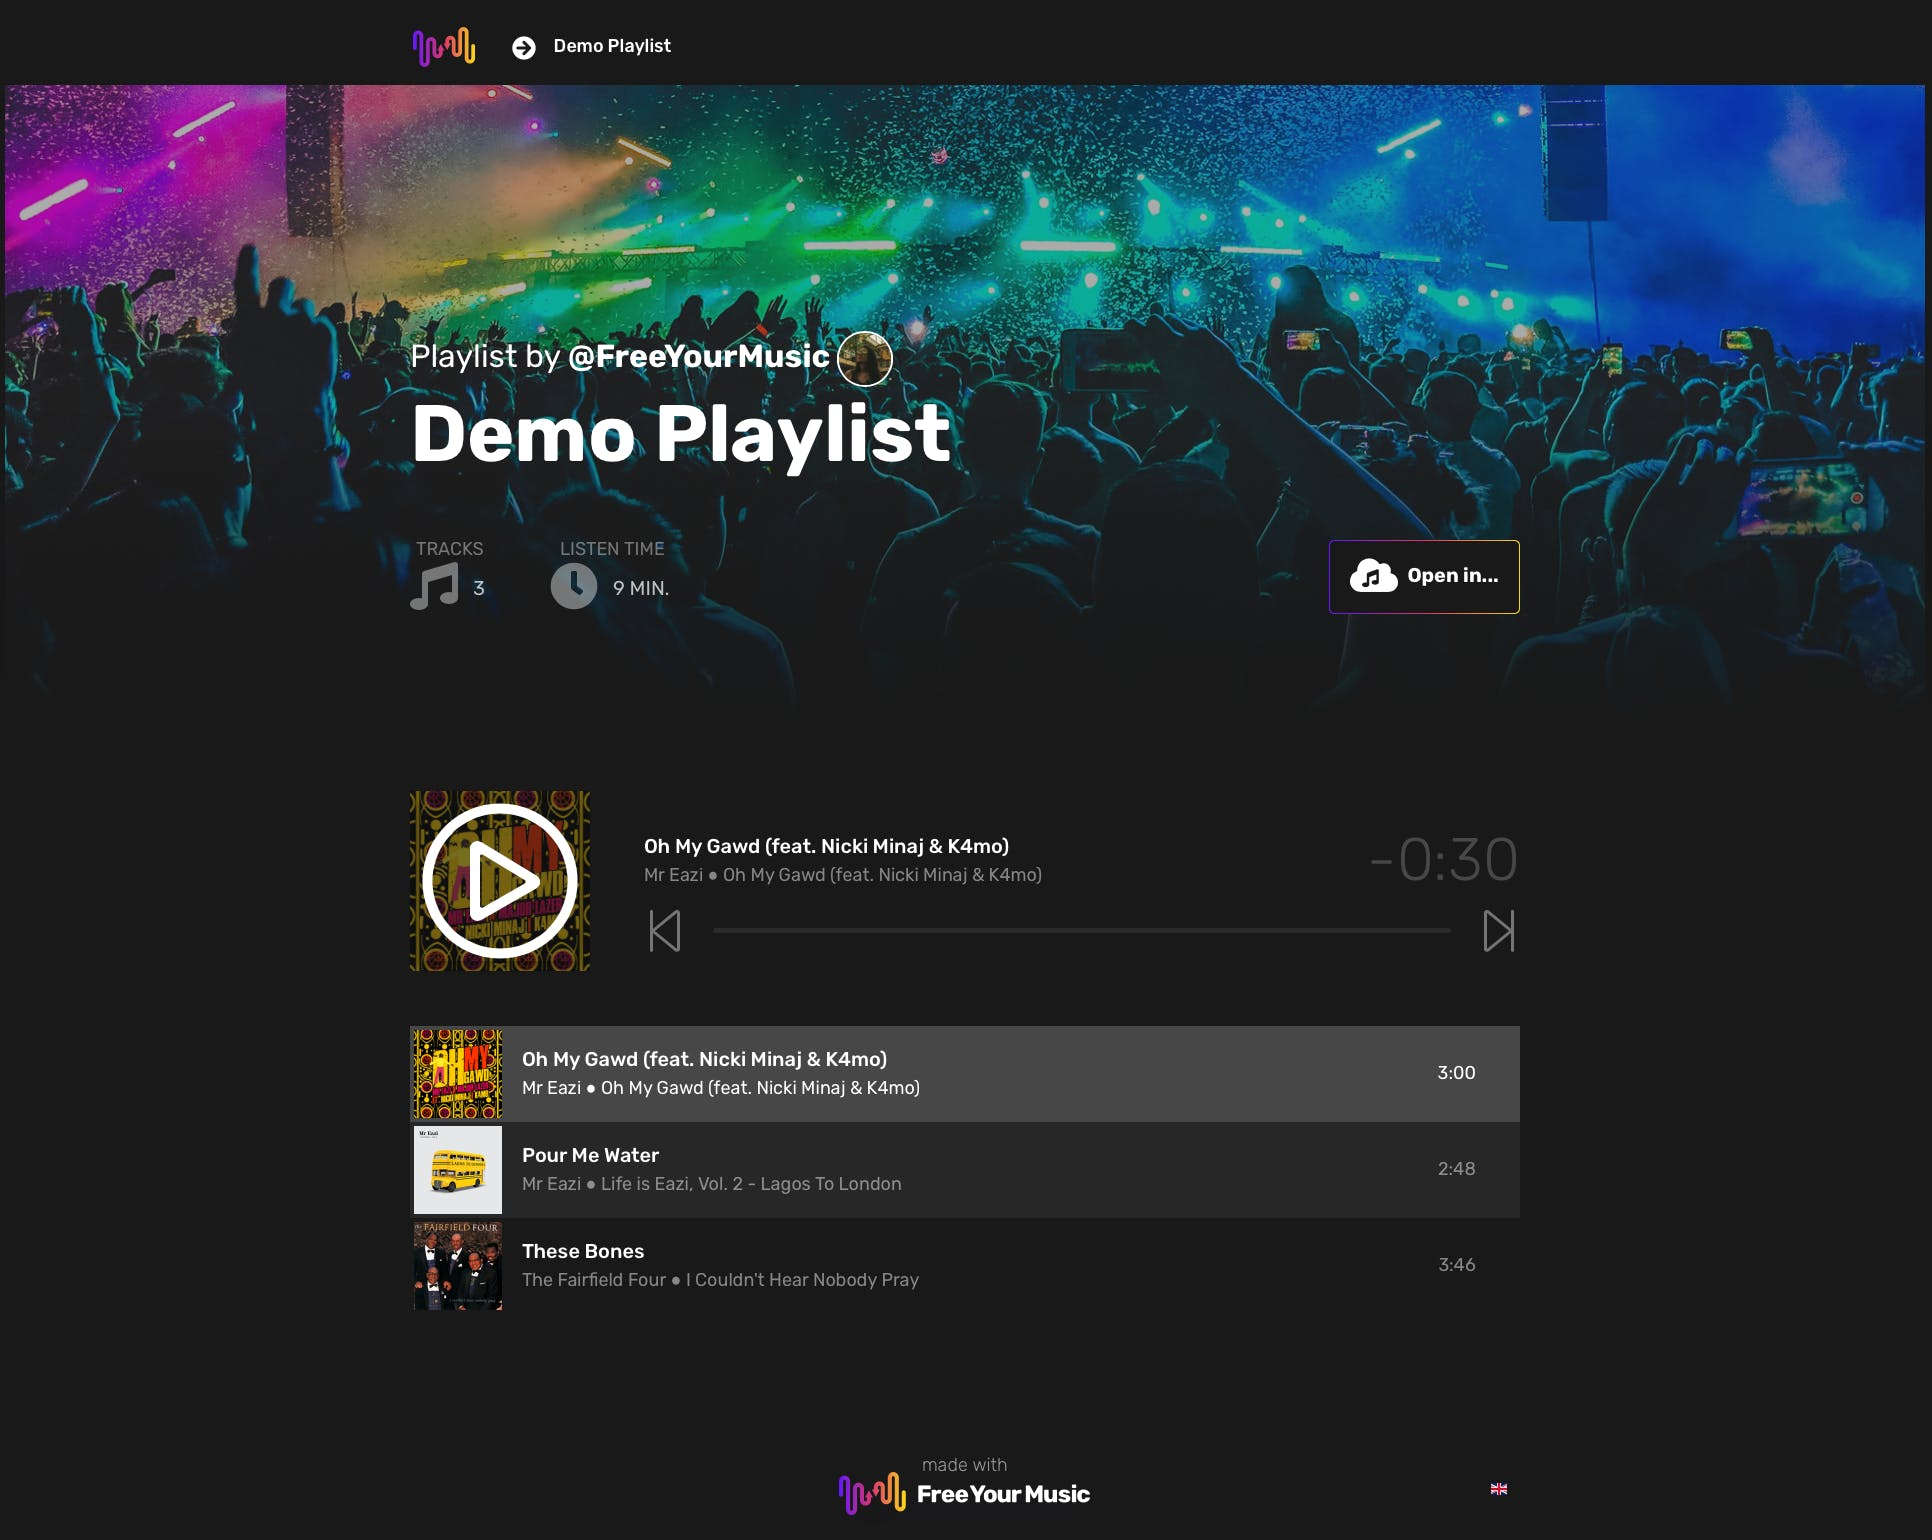 Once fans have clicked on your smart link, they'll be directed to a sleek landing page with song previews and available music services. Everyone gets to listen to your playlist on their platform of choice. The benefits are clear: more delighted fans and increased stream numbers!